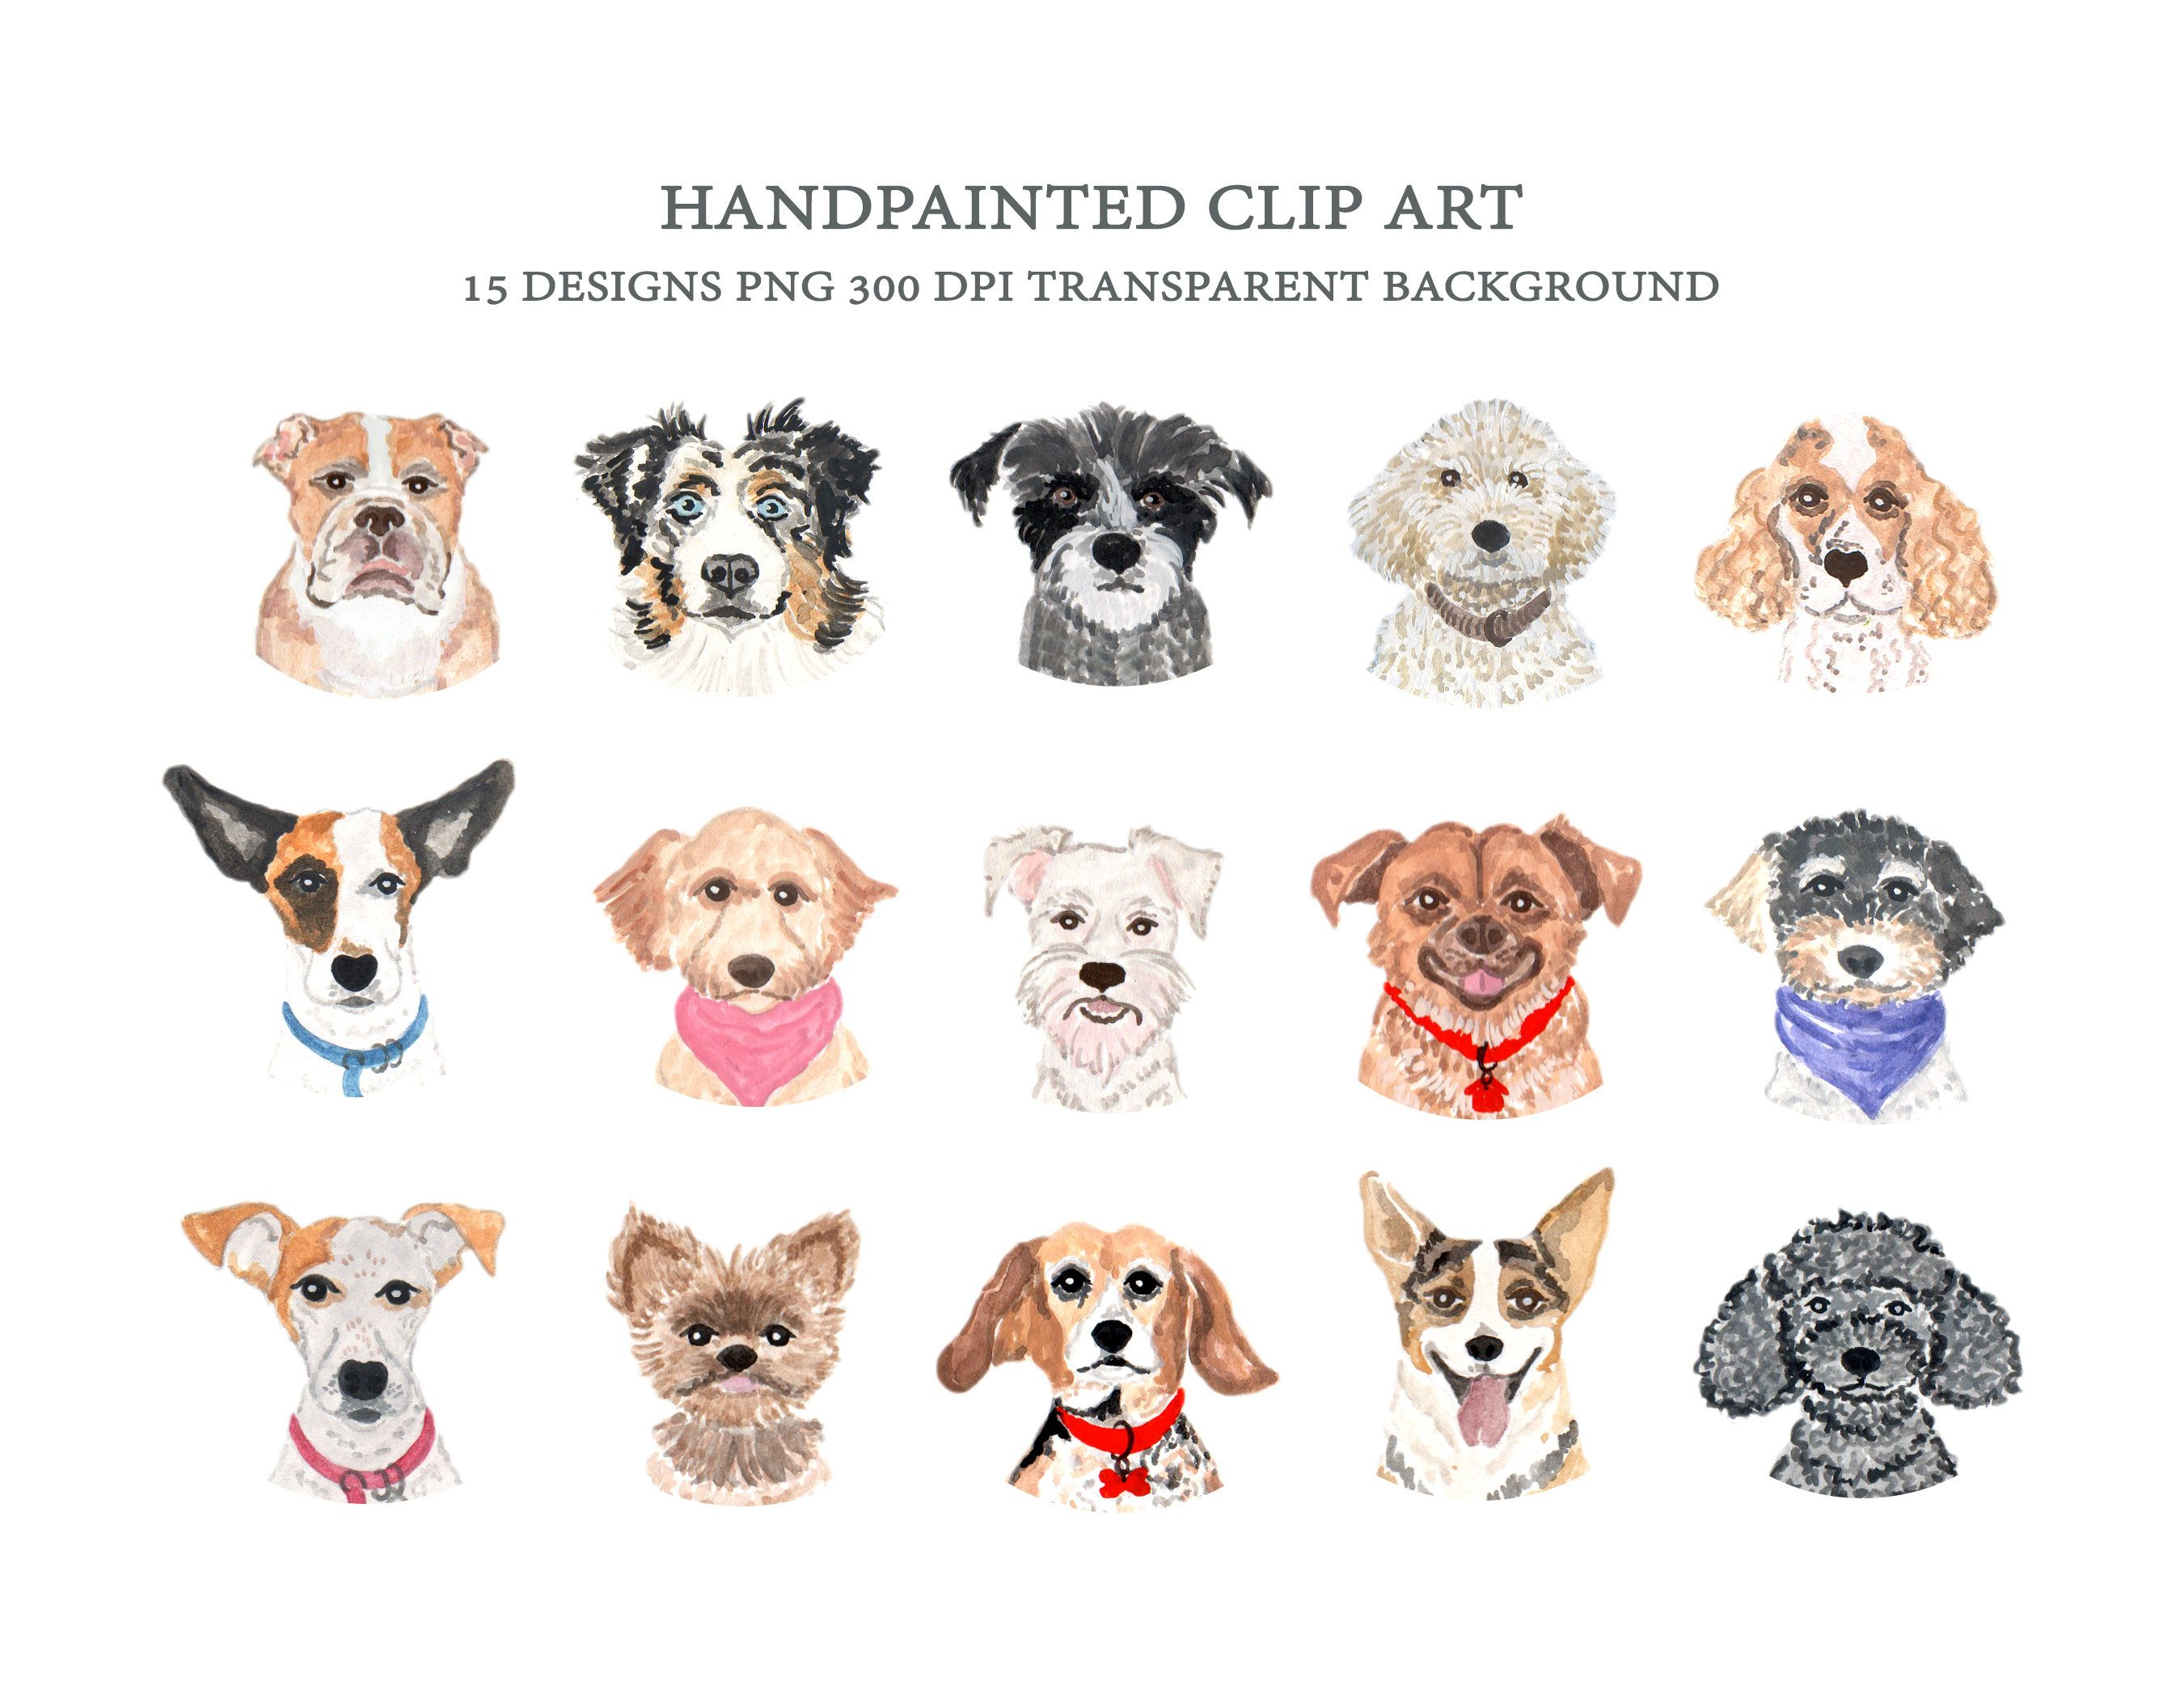 Dog Faces Clip Art Dog Breeds Clipart Watercolor Hand Painted Cute Dog Graphic Dog Different Type Head Icons In 2021 Dog Clip Art Watercolor Dog Animal Clipart